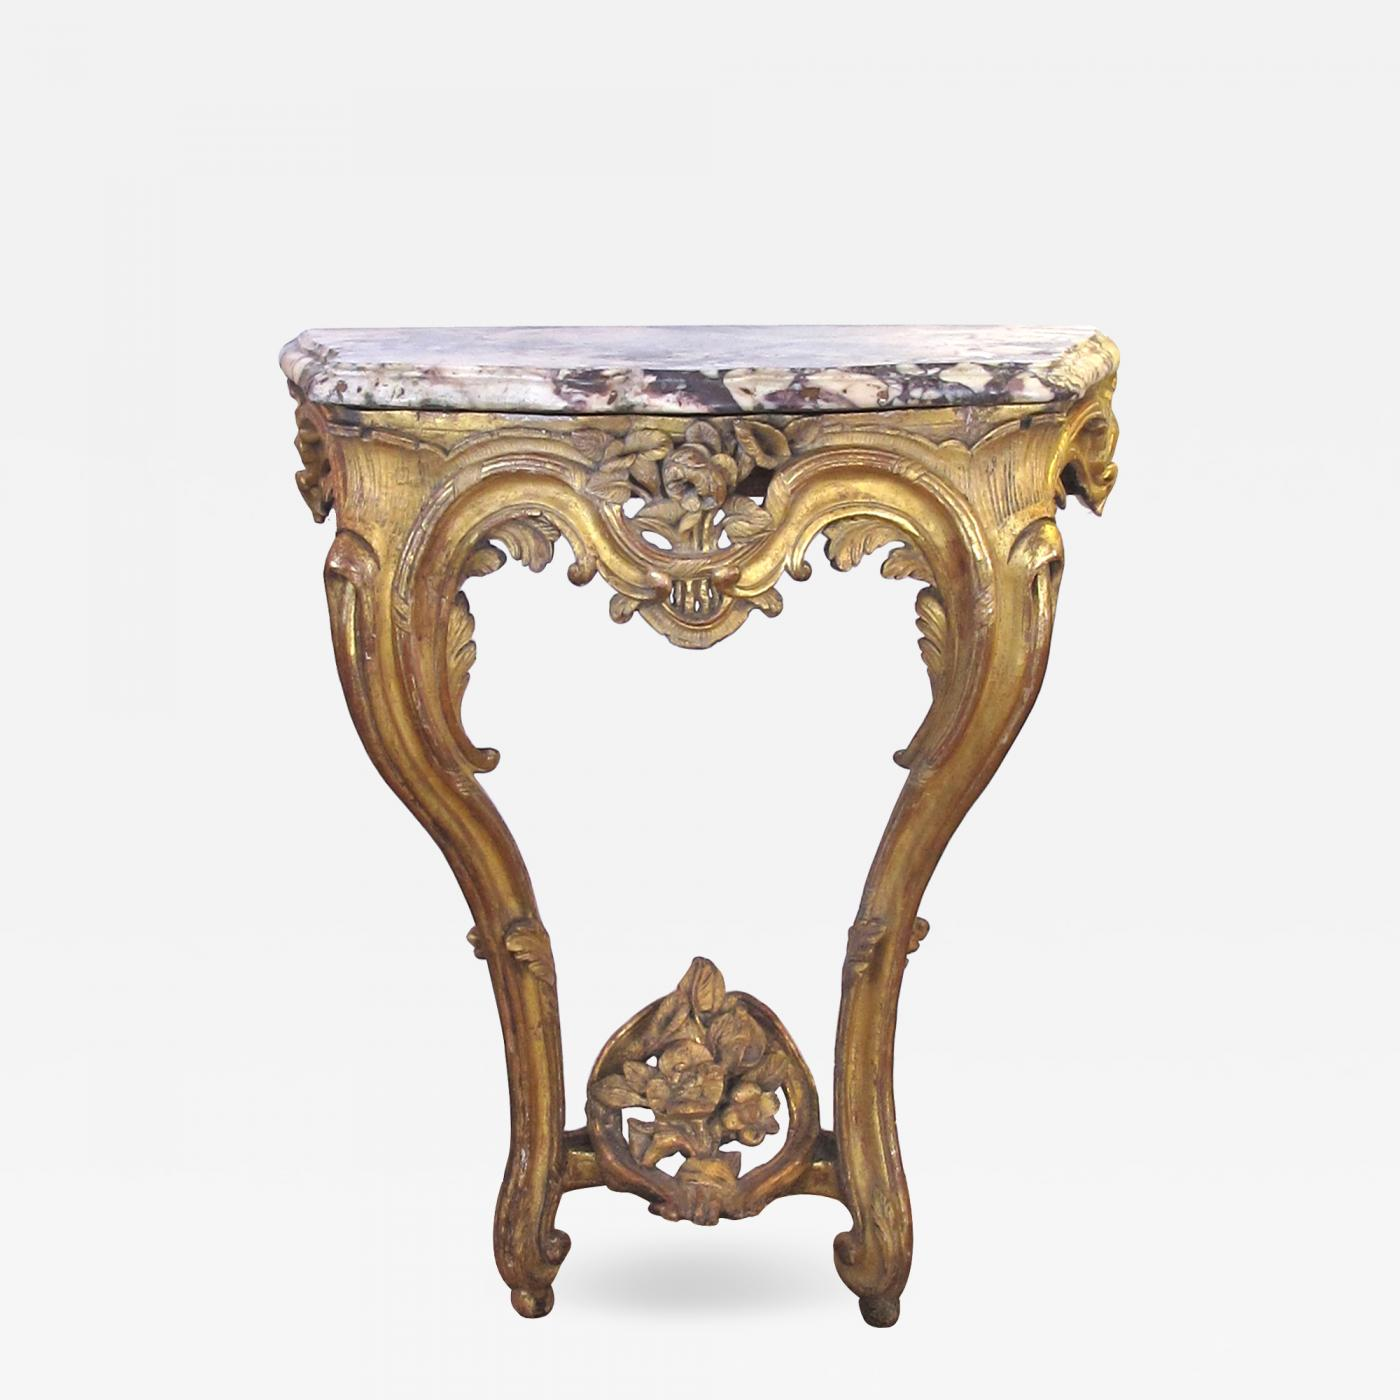 A Well-carved Italian Rococo Gilt-wood Wall Console Table With Marble Top